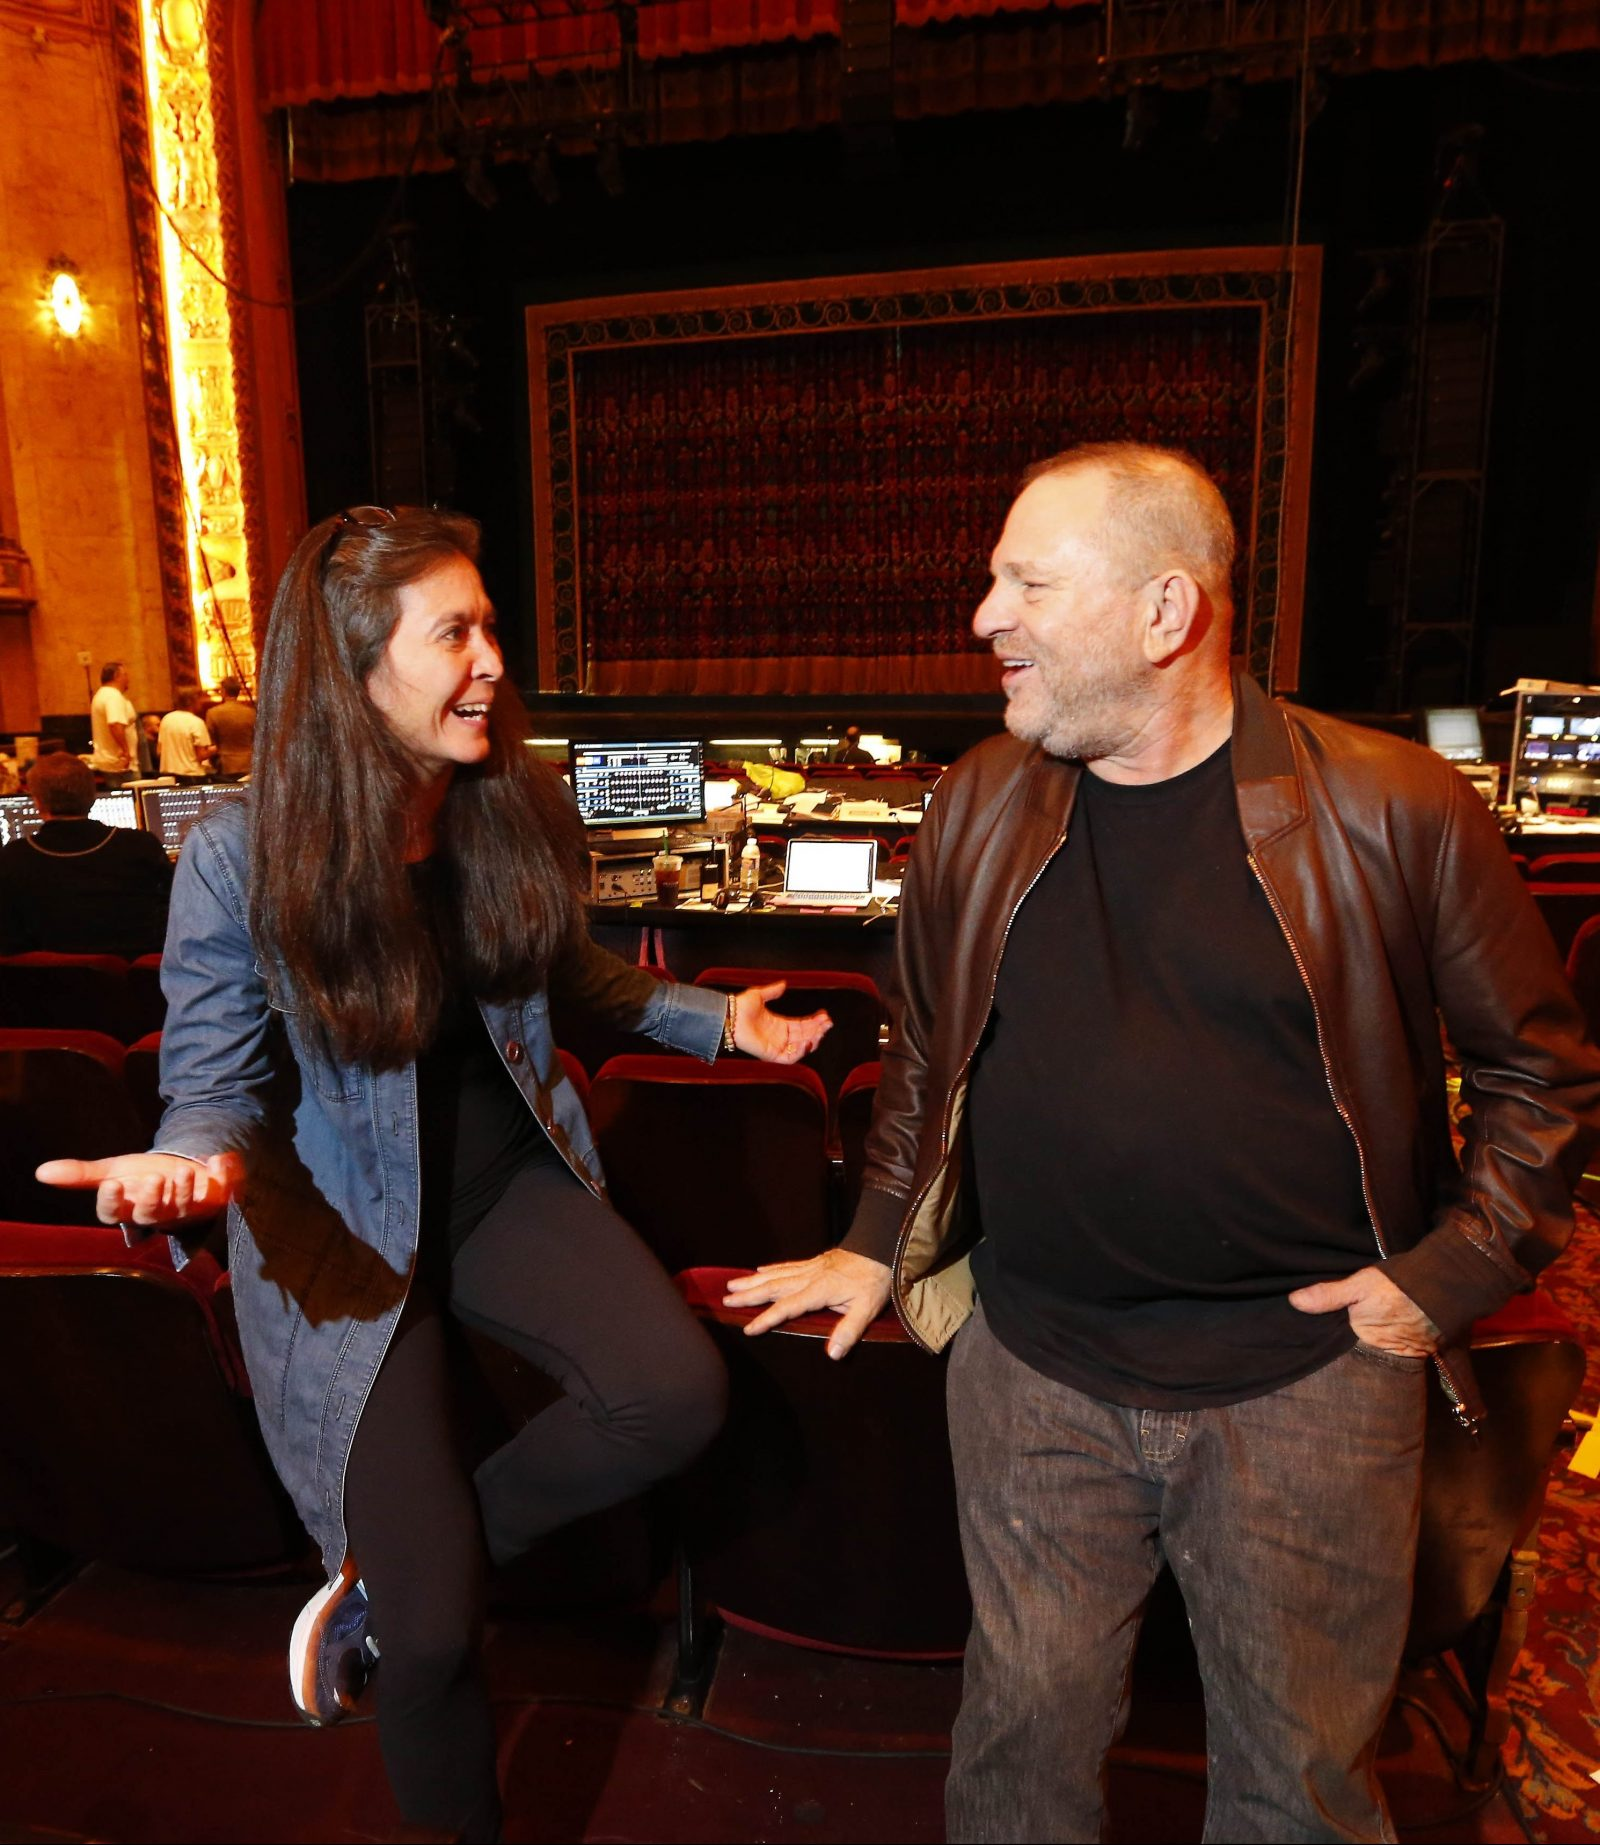 Finding Neverland director Diane Paulus and producer Harvey Weinstein talk during the tech load-in at Sheas. (Mark Mulville/The Buffalo News)